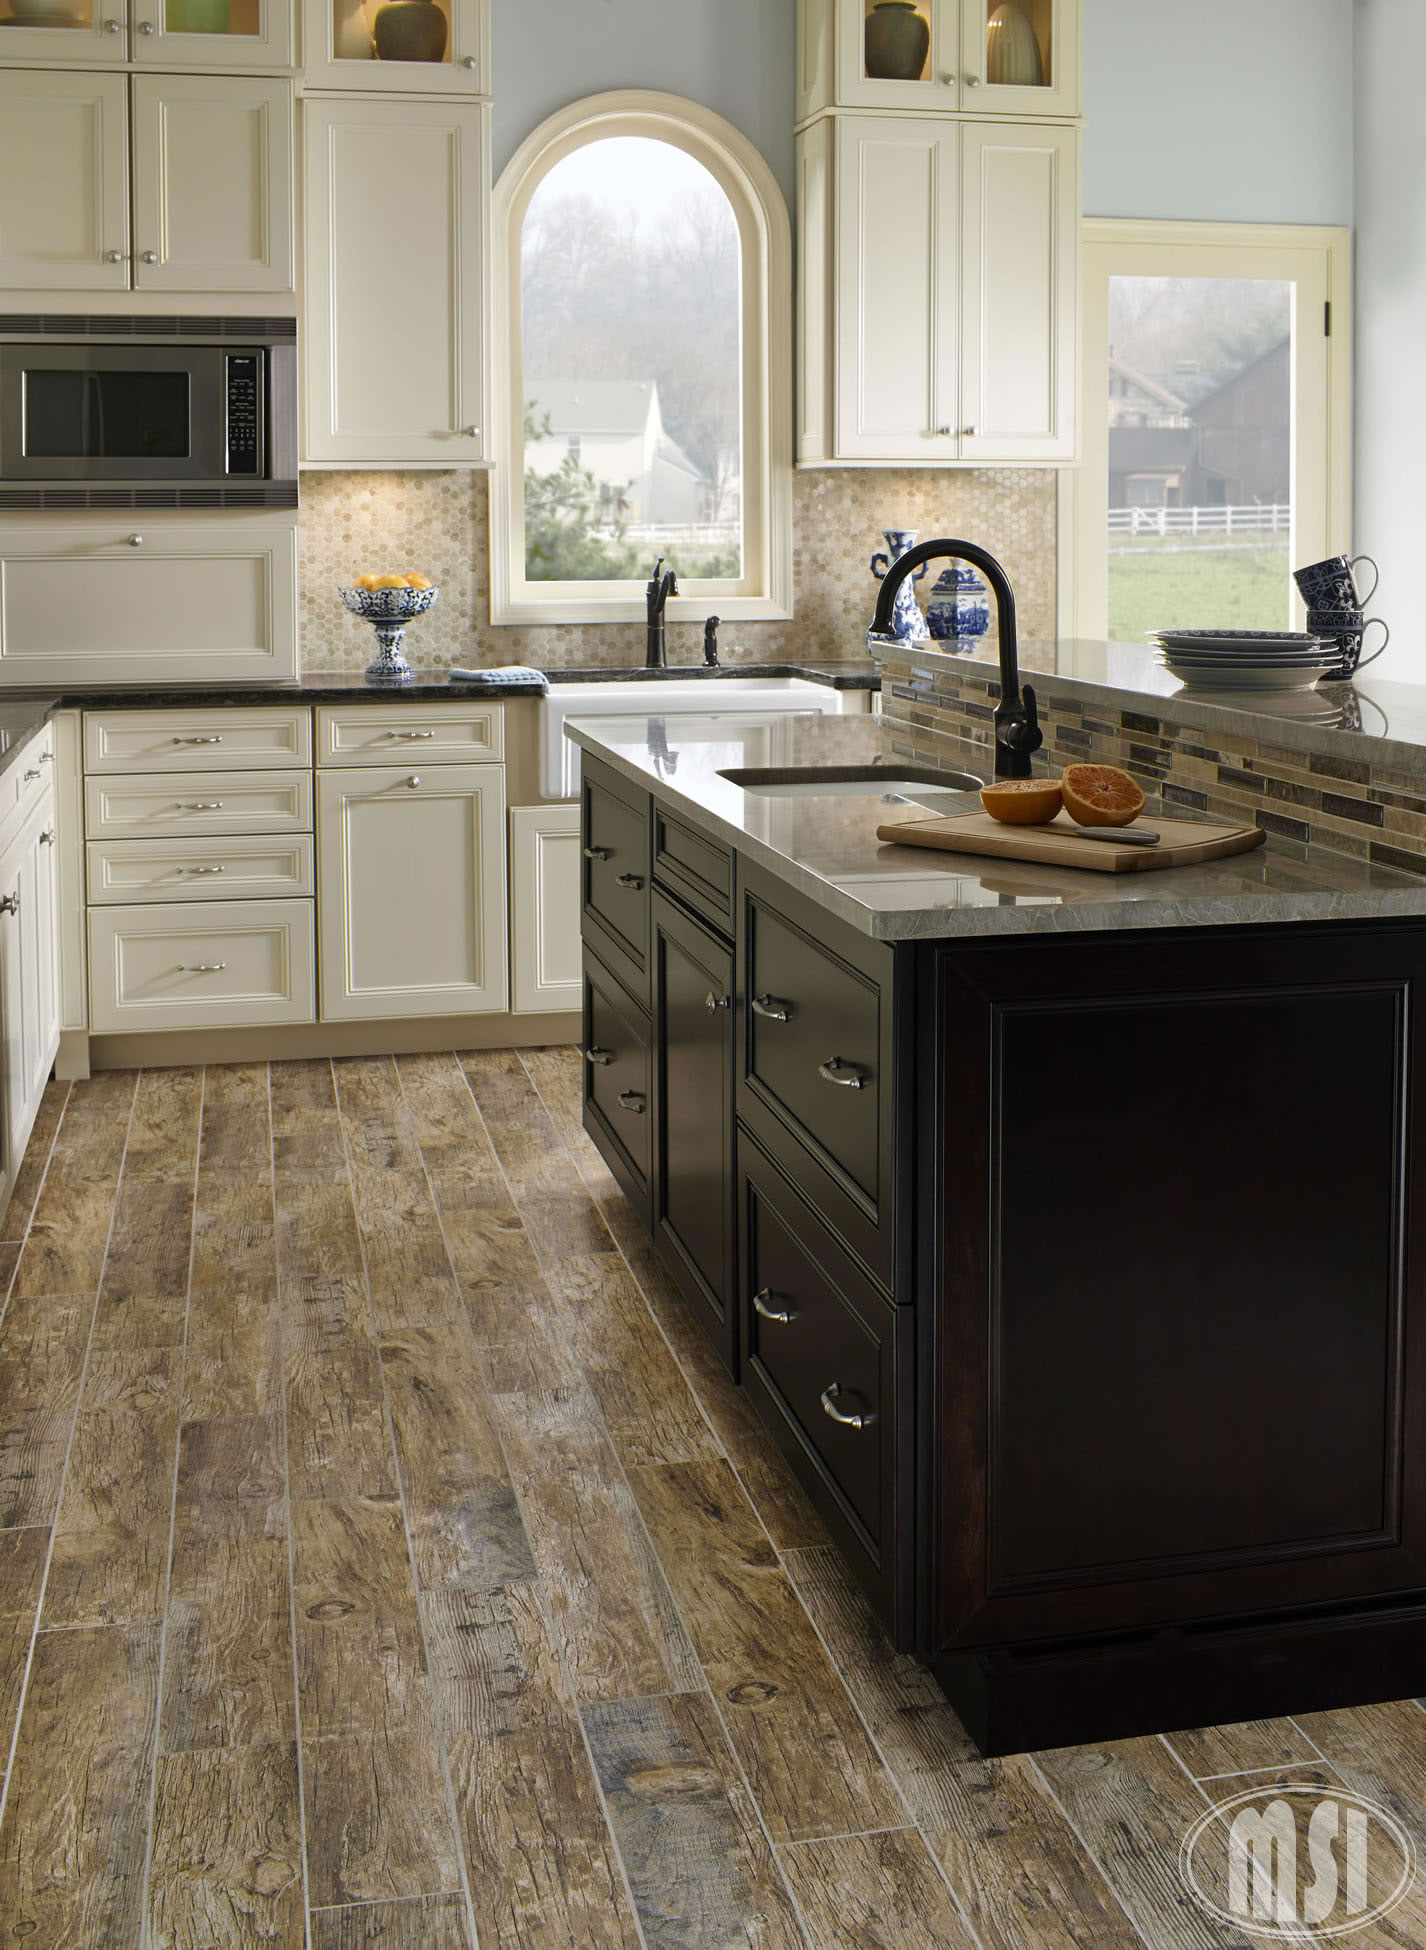 Trends in kitchen appliance colors 2014 - Floor Color Trends 2014 Moreover Kitchen Appliance Color Trends 2014